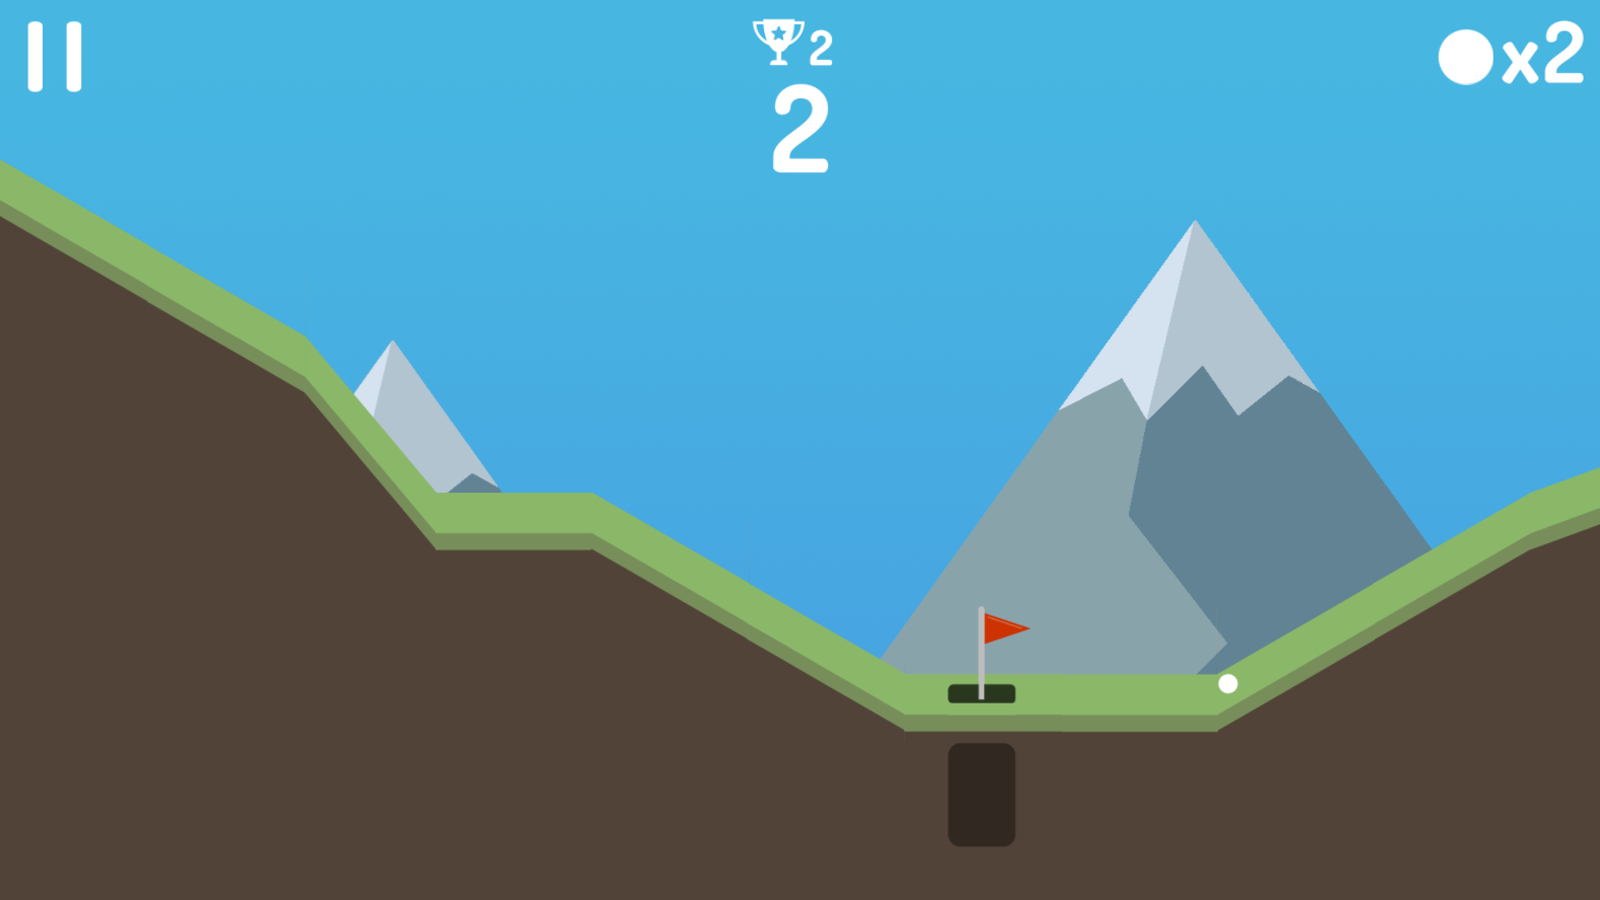 Mini Golf Game Screenshot.